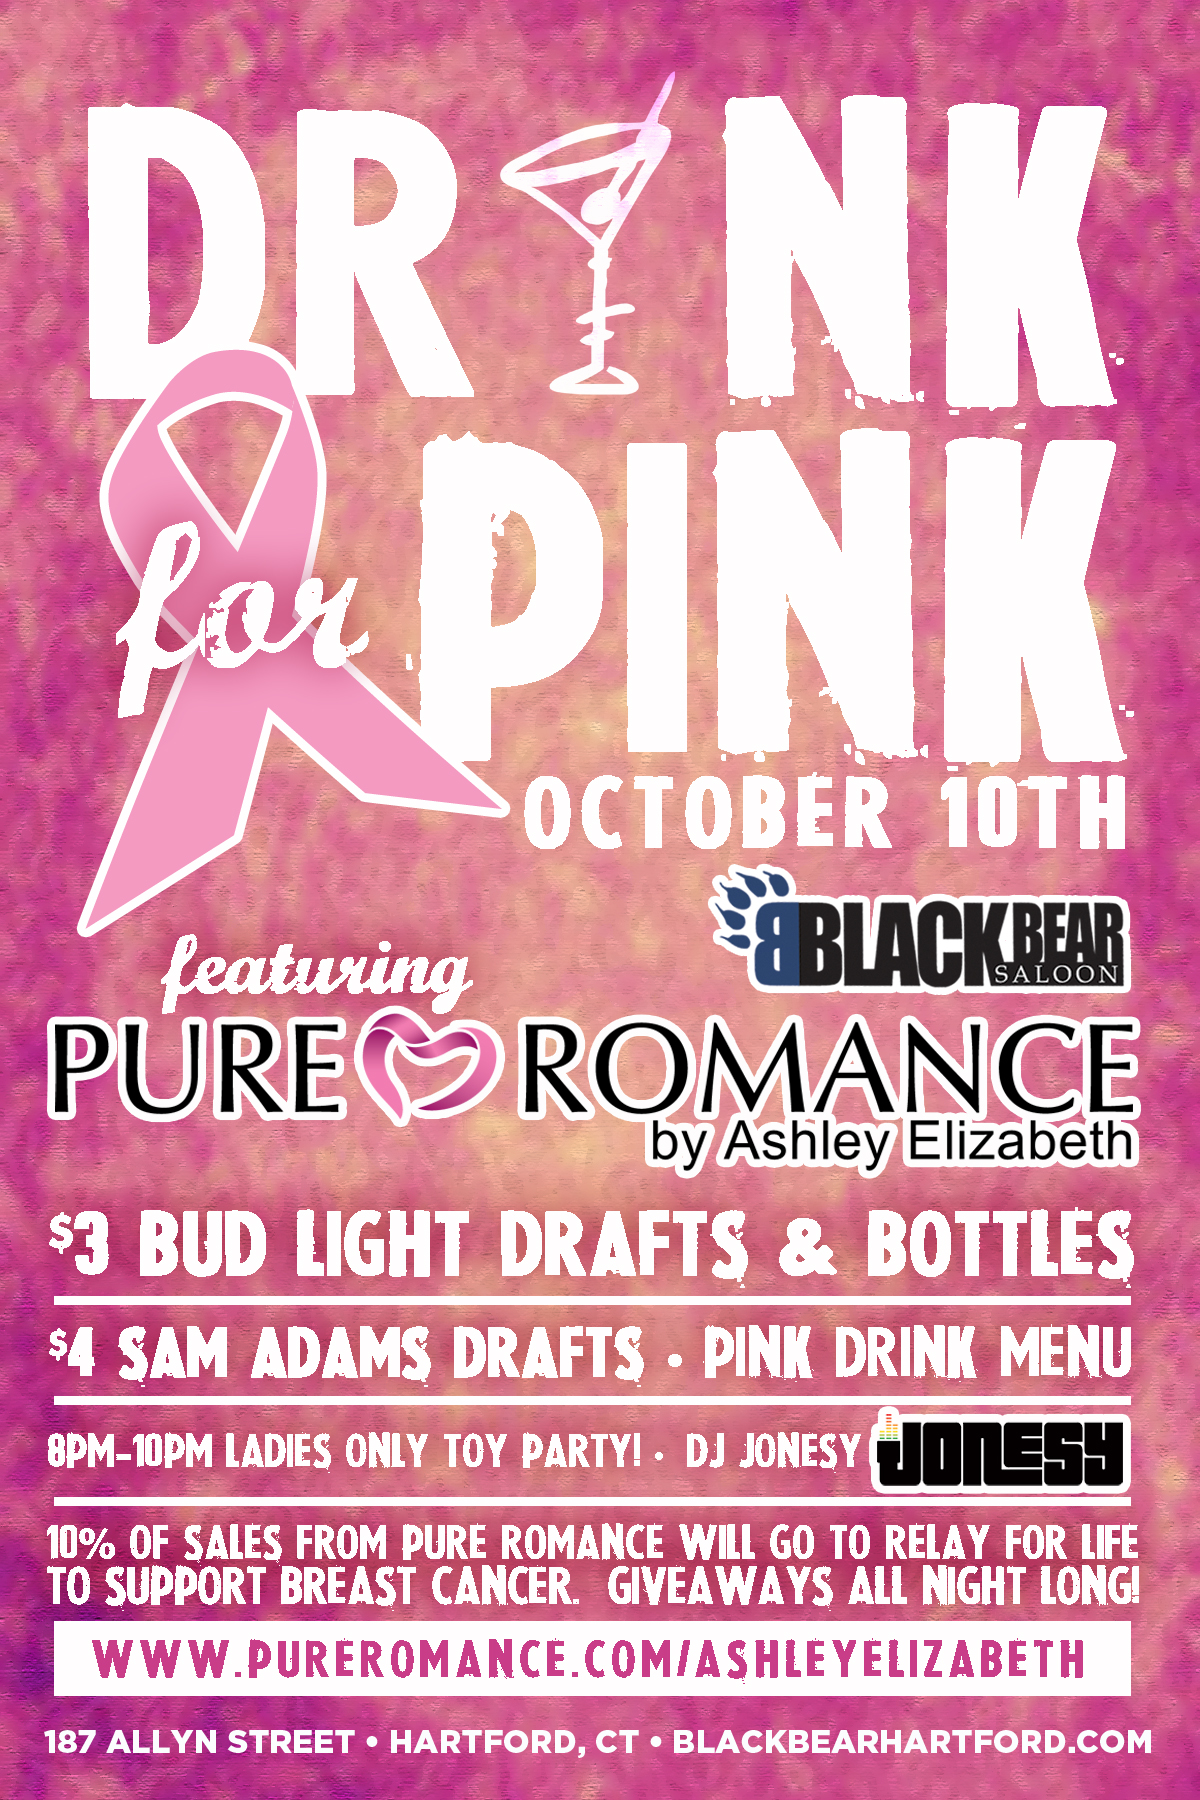 FRIDAY OCT. 10TH, JOIN US FOR  DRINK FOR PINK  @ BLACK BEAR HARTFORD CT  (FEAT. PURE ROMANCE by ASHLEY ELIZABETH)  MUSIC BY JONESY AT 9PM  10% of sales from Pure Romance will go to Relay For Life to support Breast Cancer Awareness. Giveaways All Night Long!   WWW.BLACKBEARHARTFORD.COM